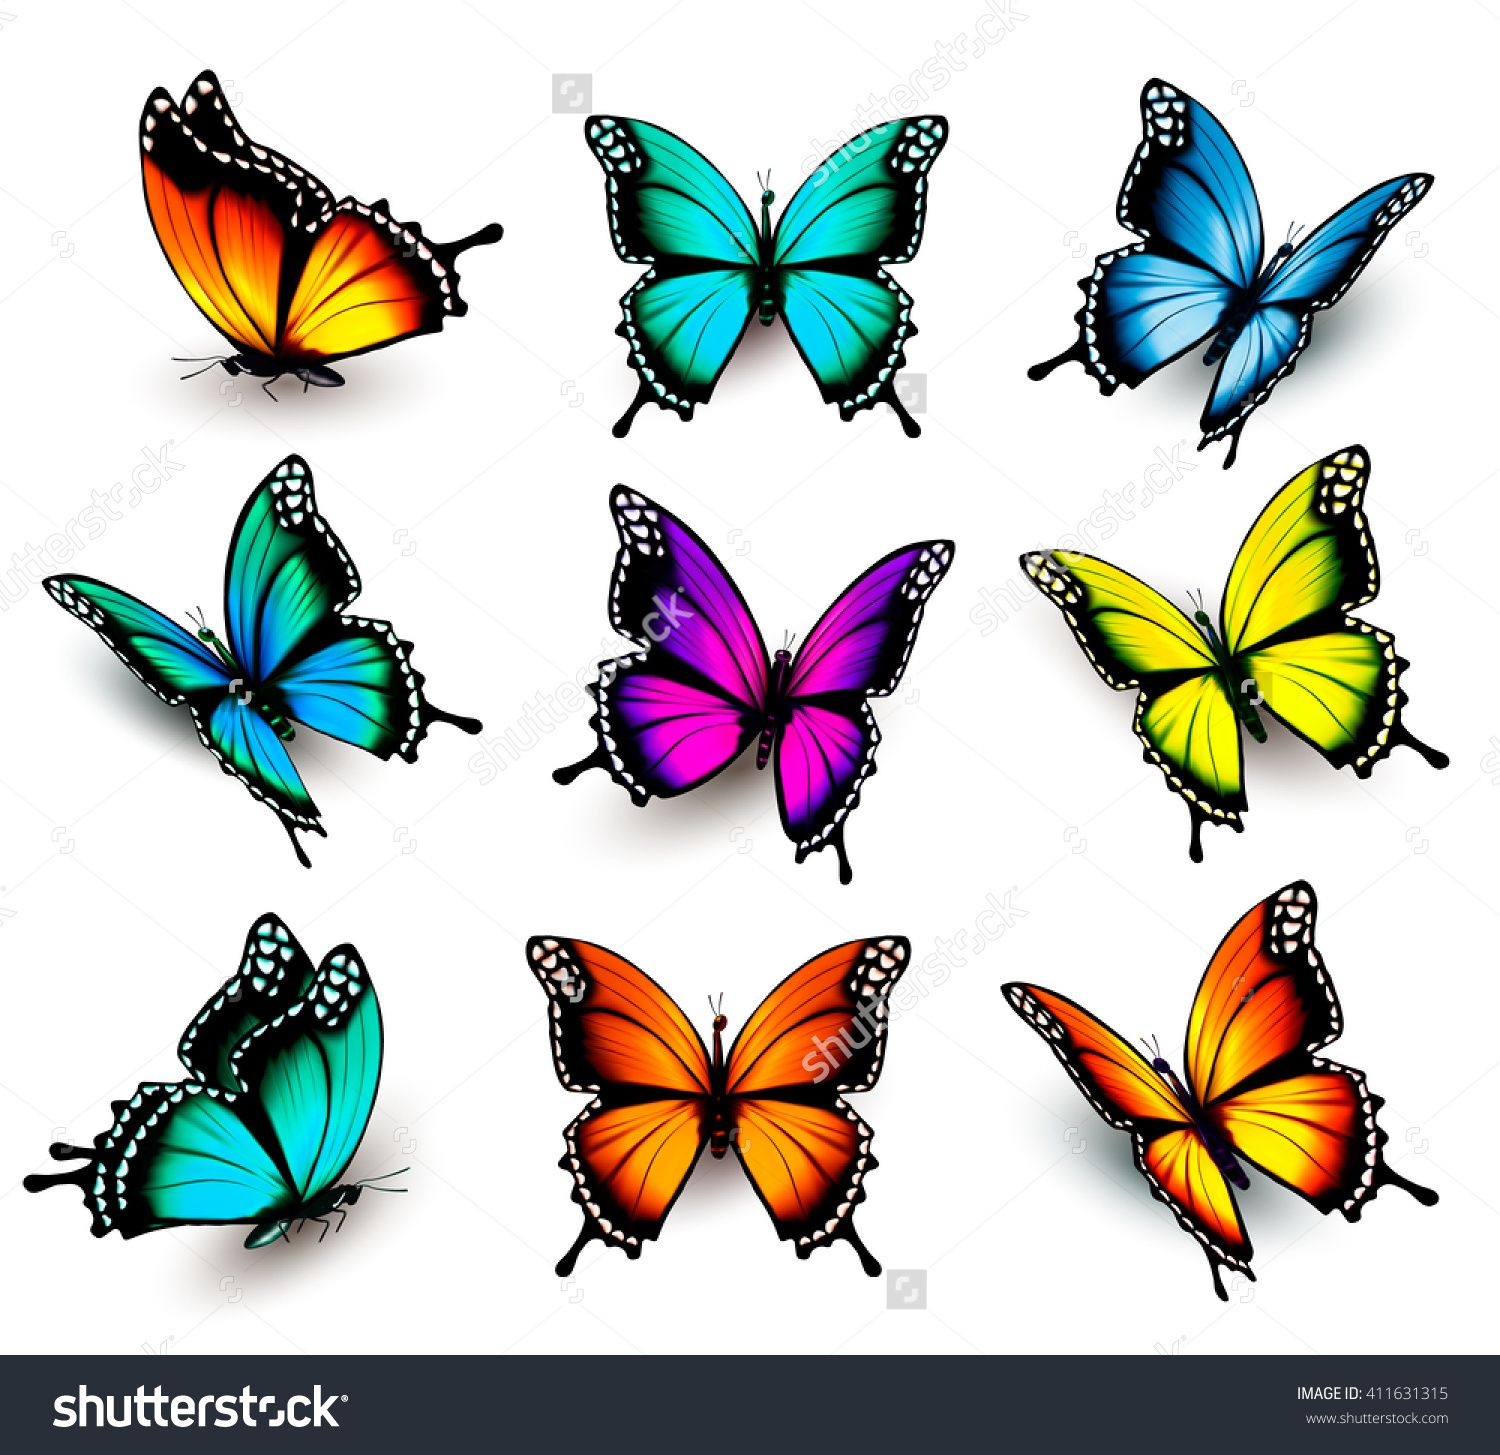 collection of colorful butterflies flying in different